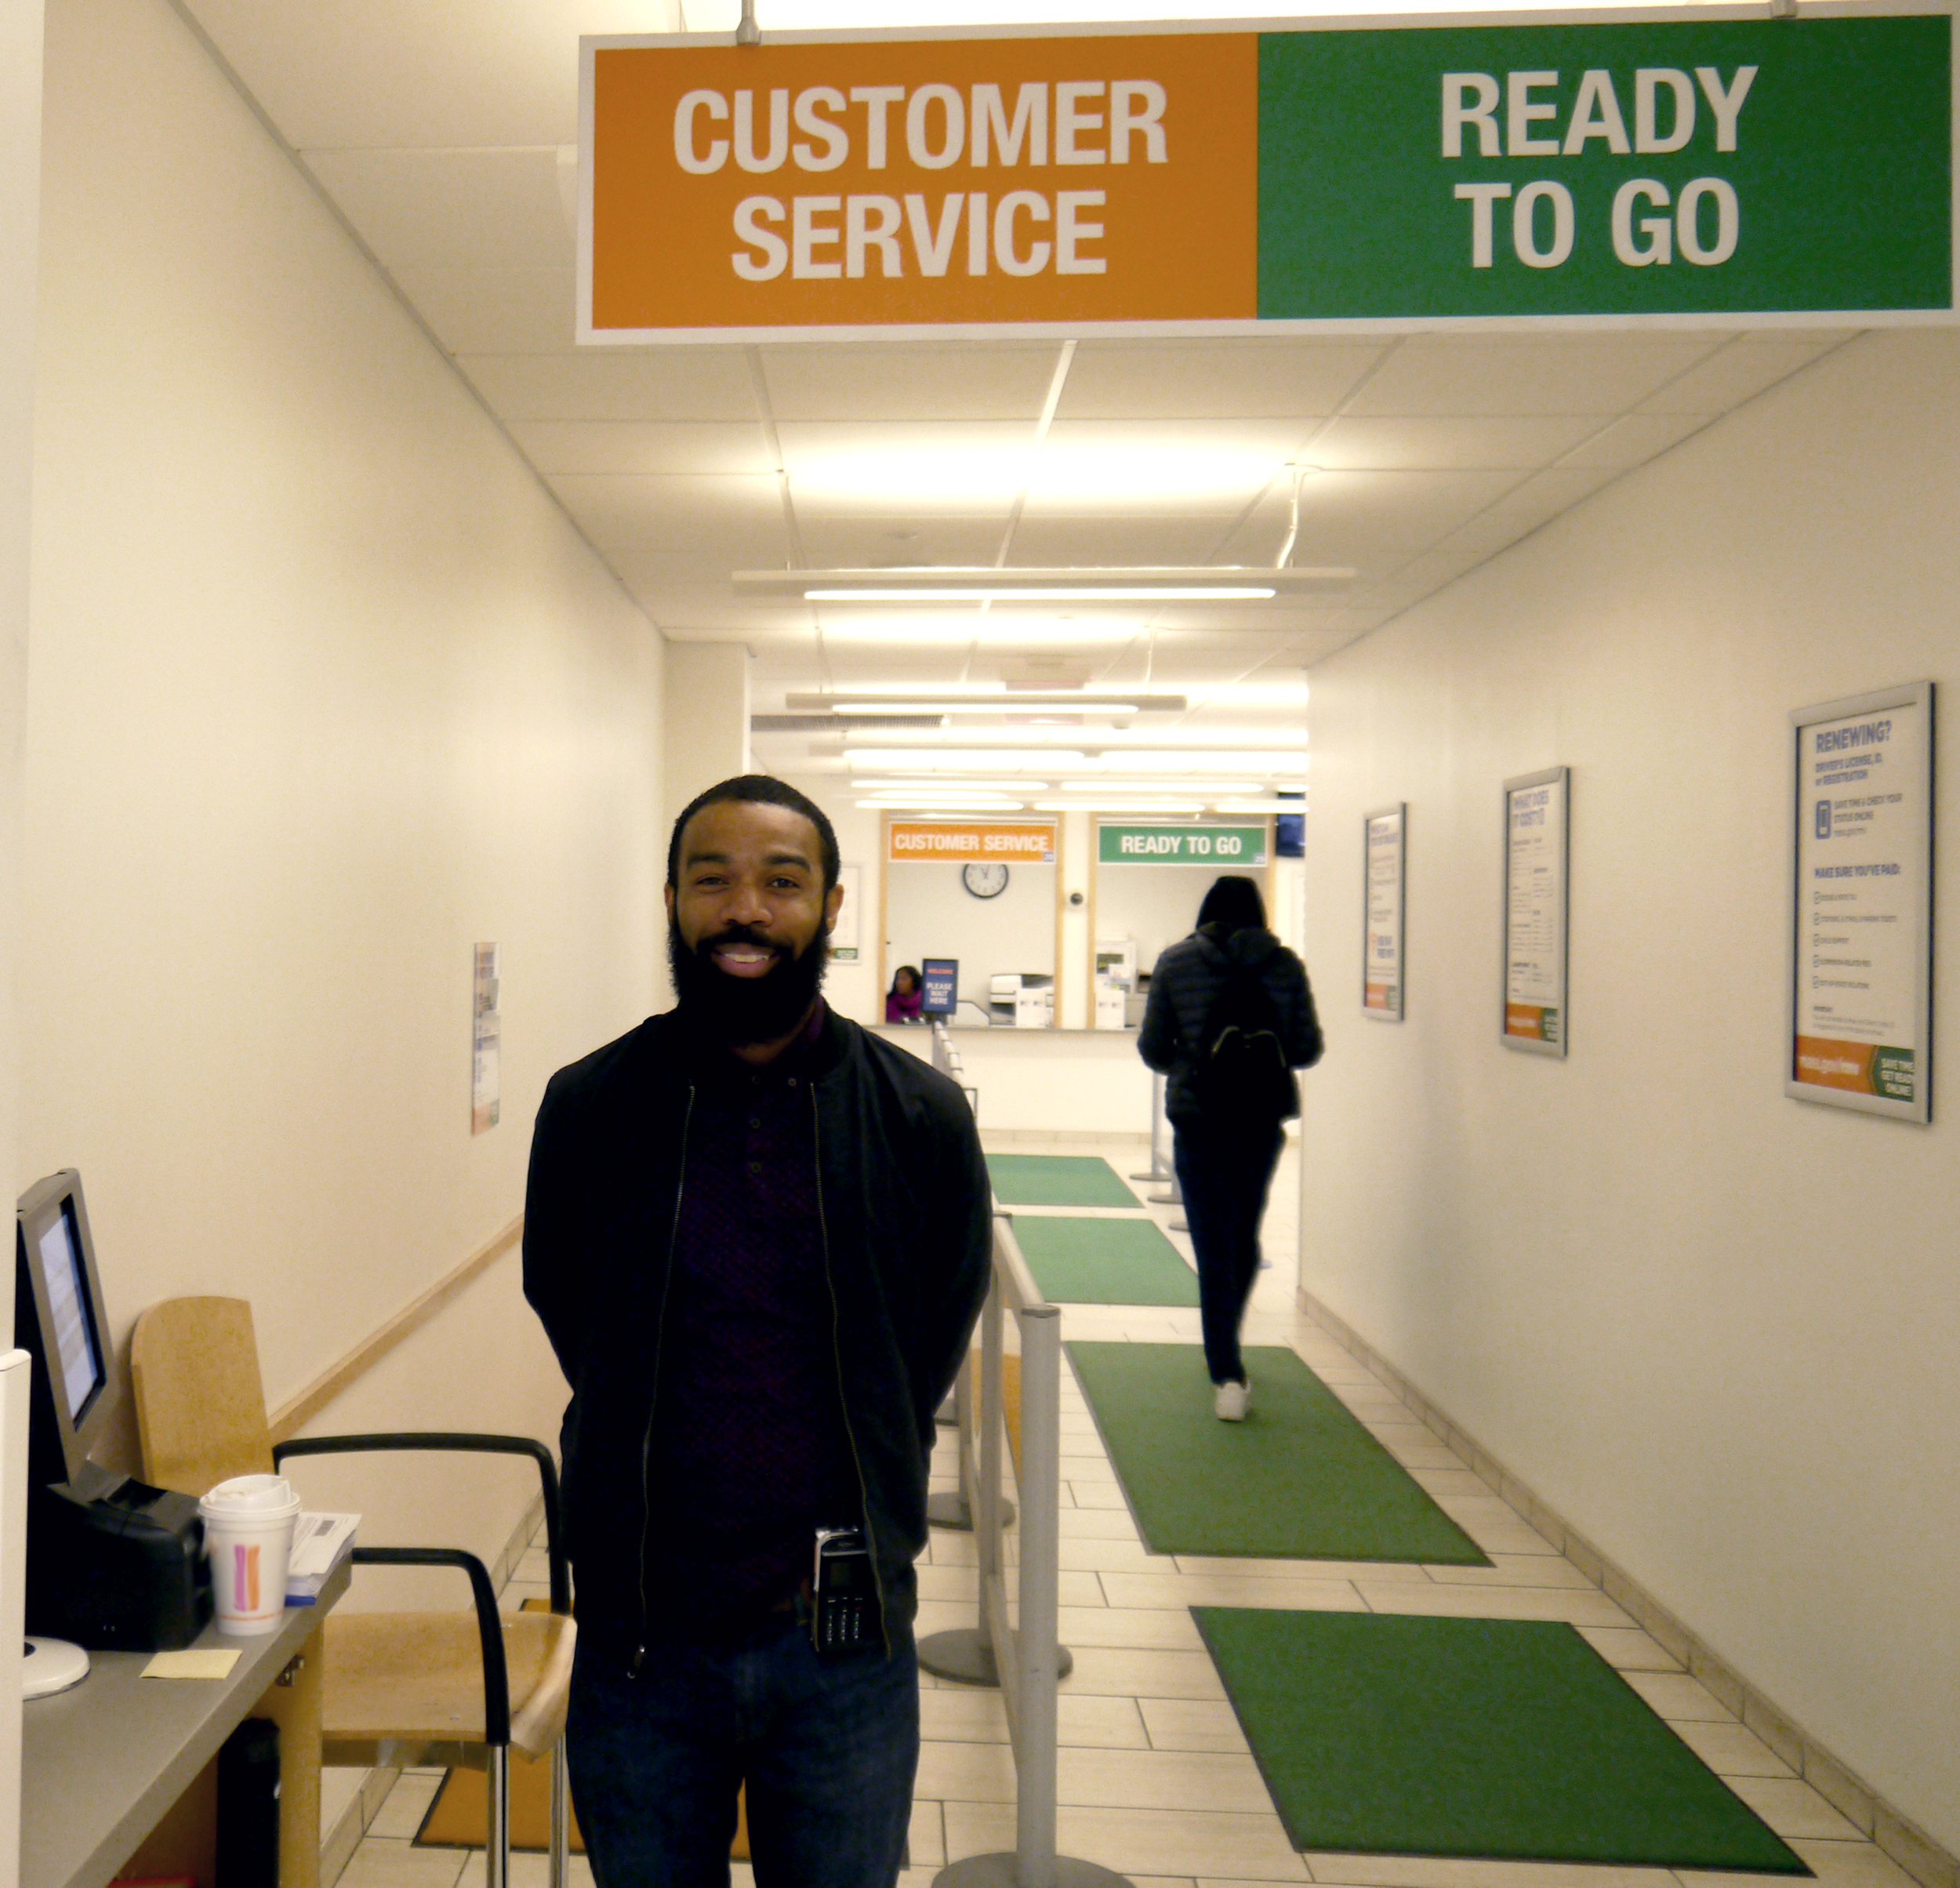 Image of an RMV Service Center greeter.